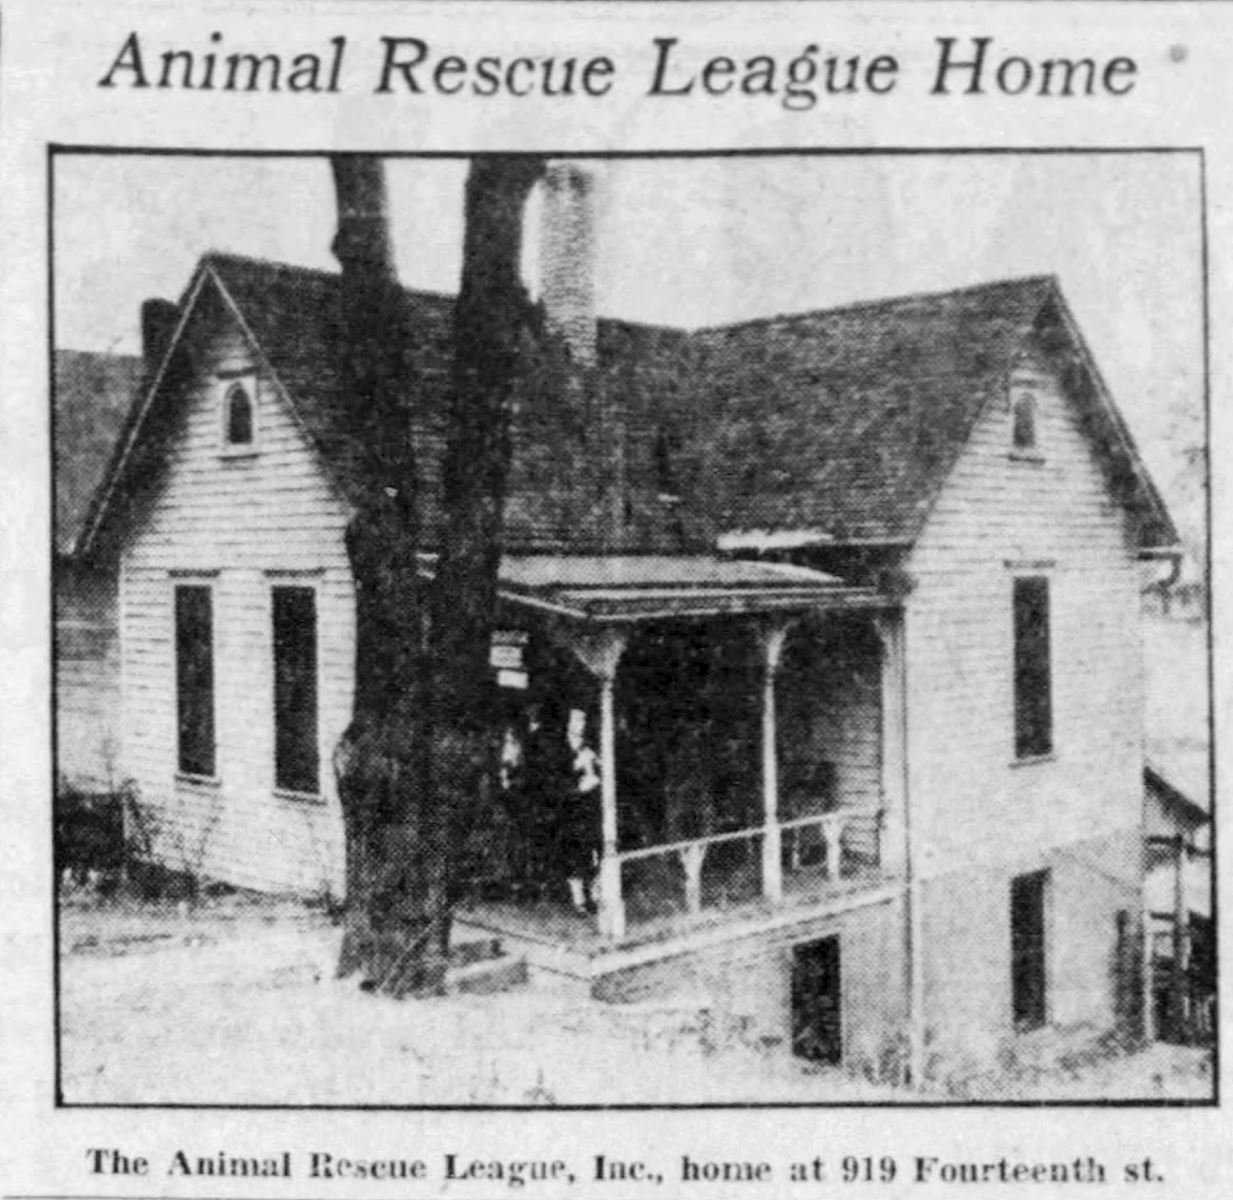 Original home of Animal Rescue League